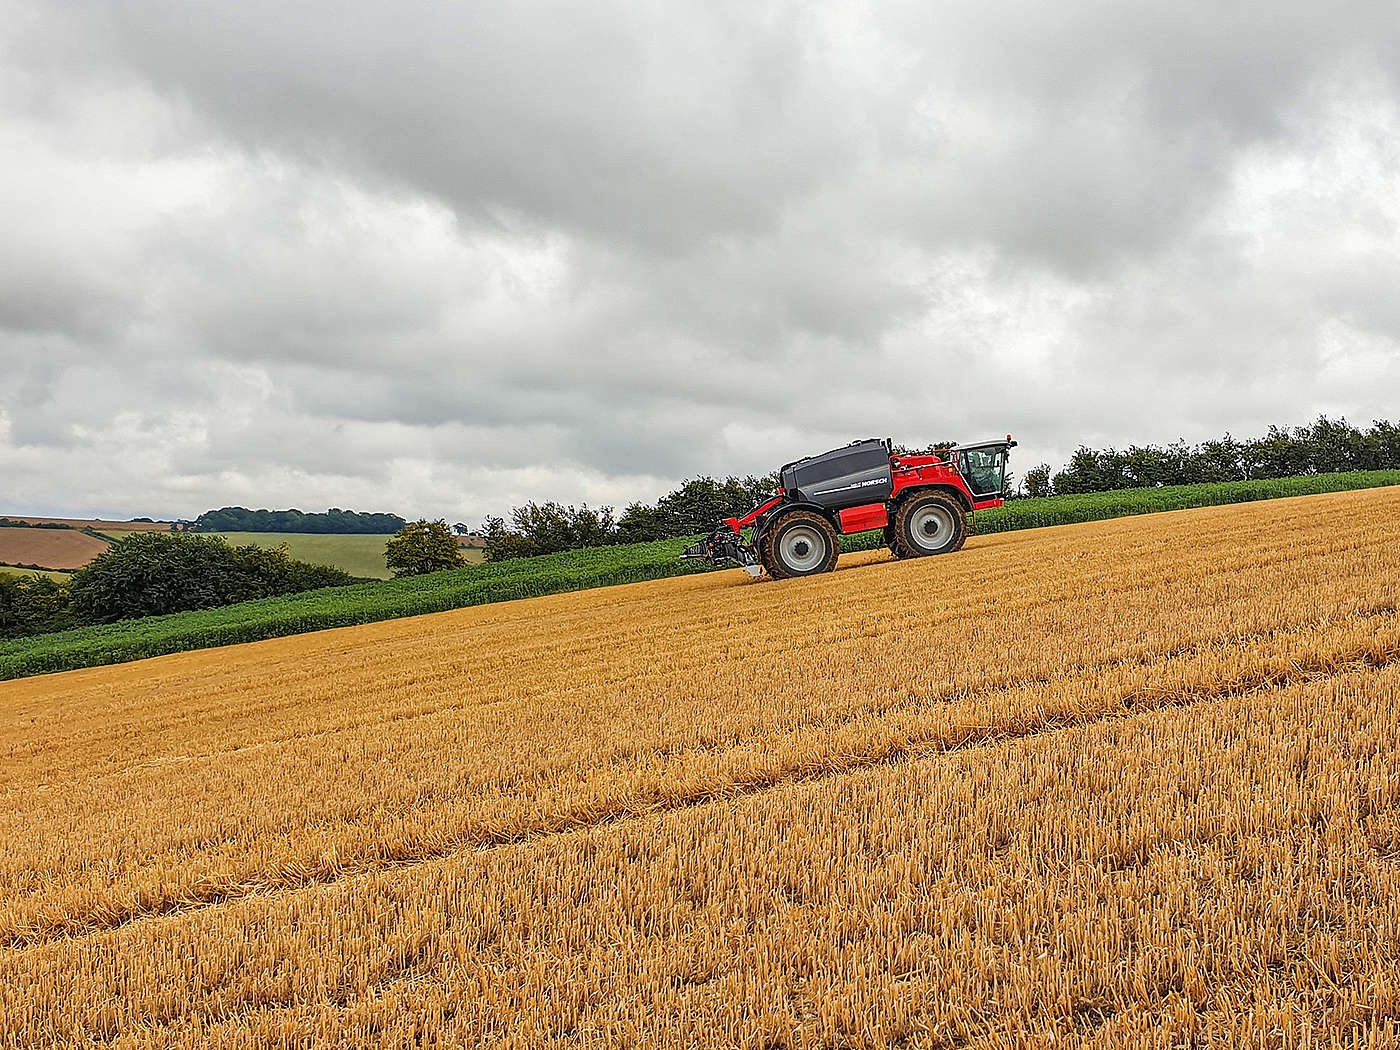 HORSCH product image: During a field demonstration in Great Britain the new self-propelled sprayer PT proved its excellent climbing ability in hilly terrain.